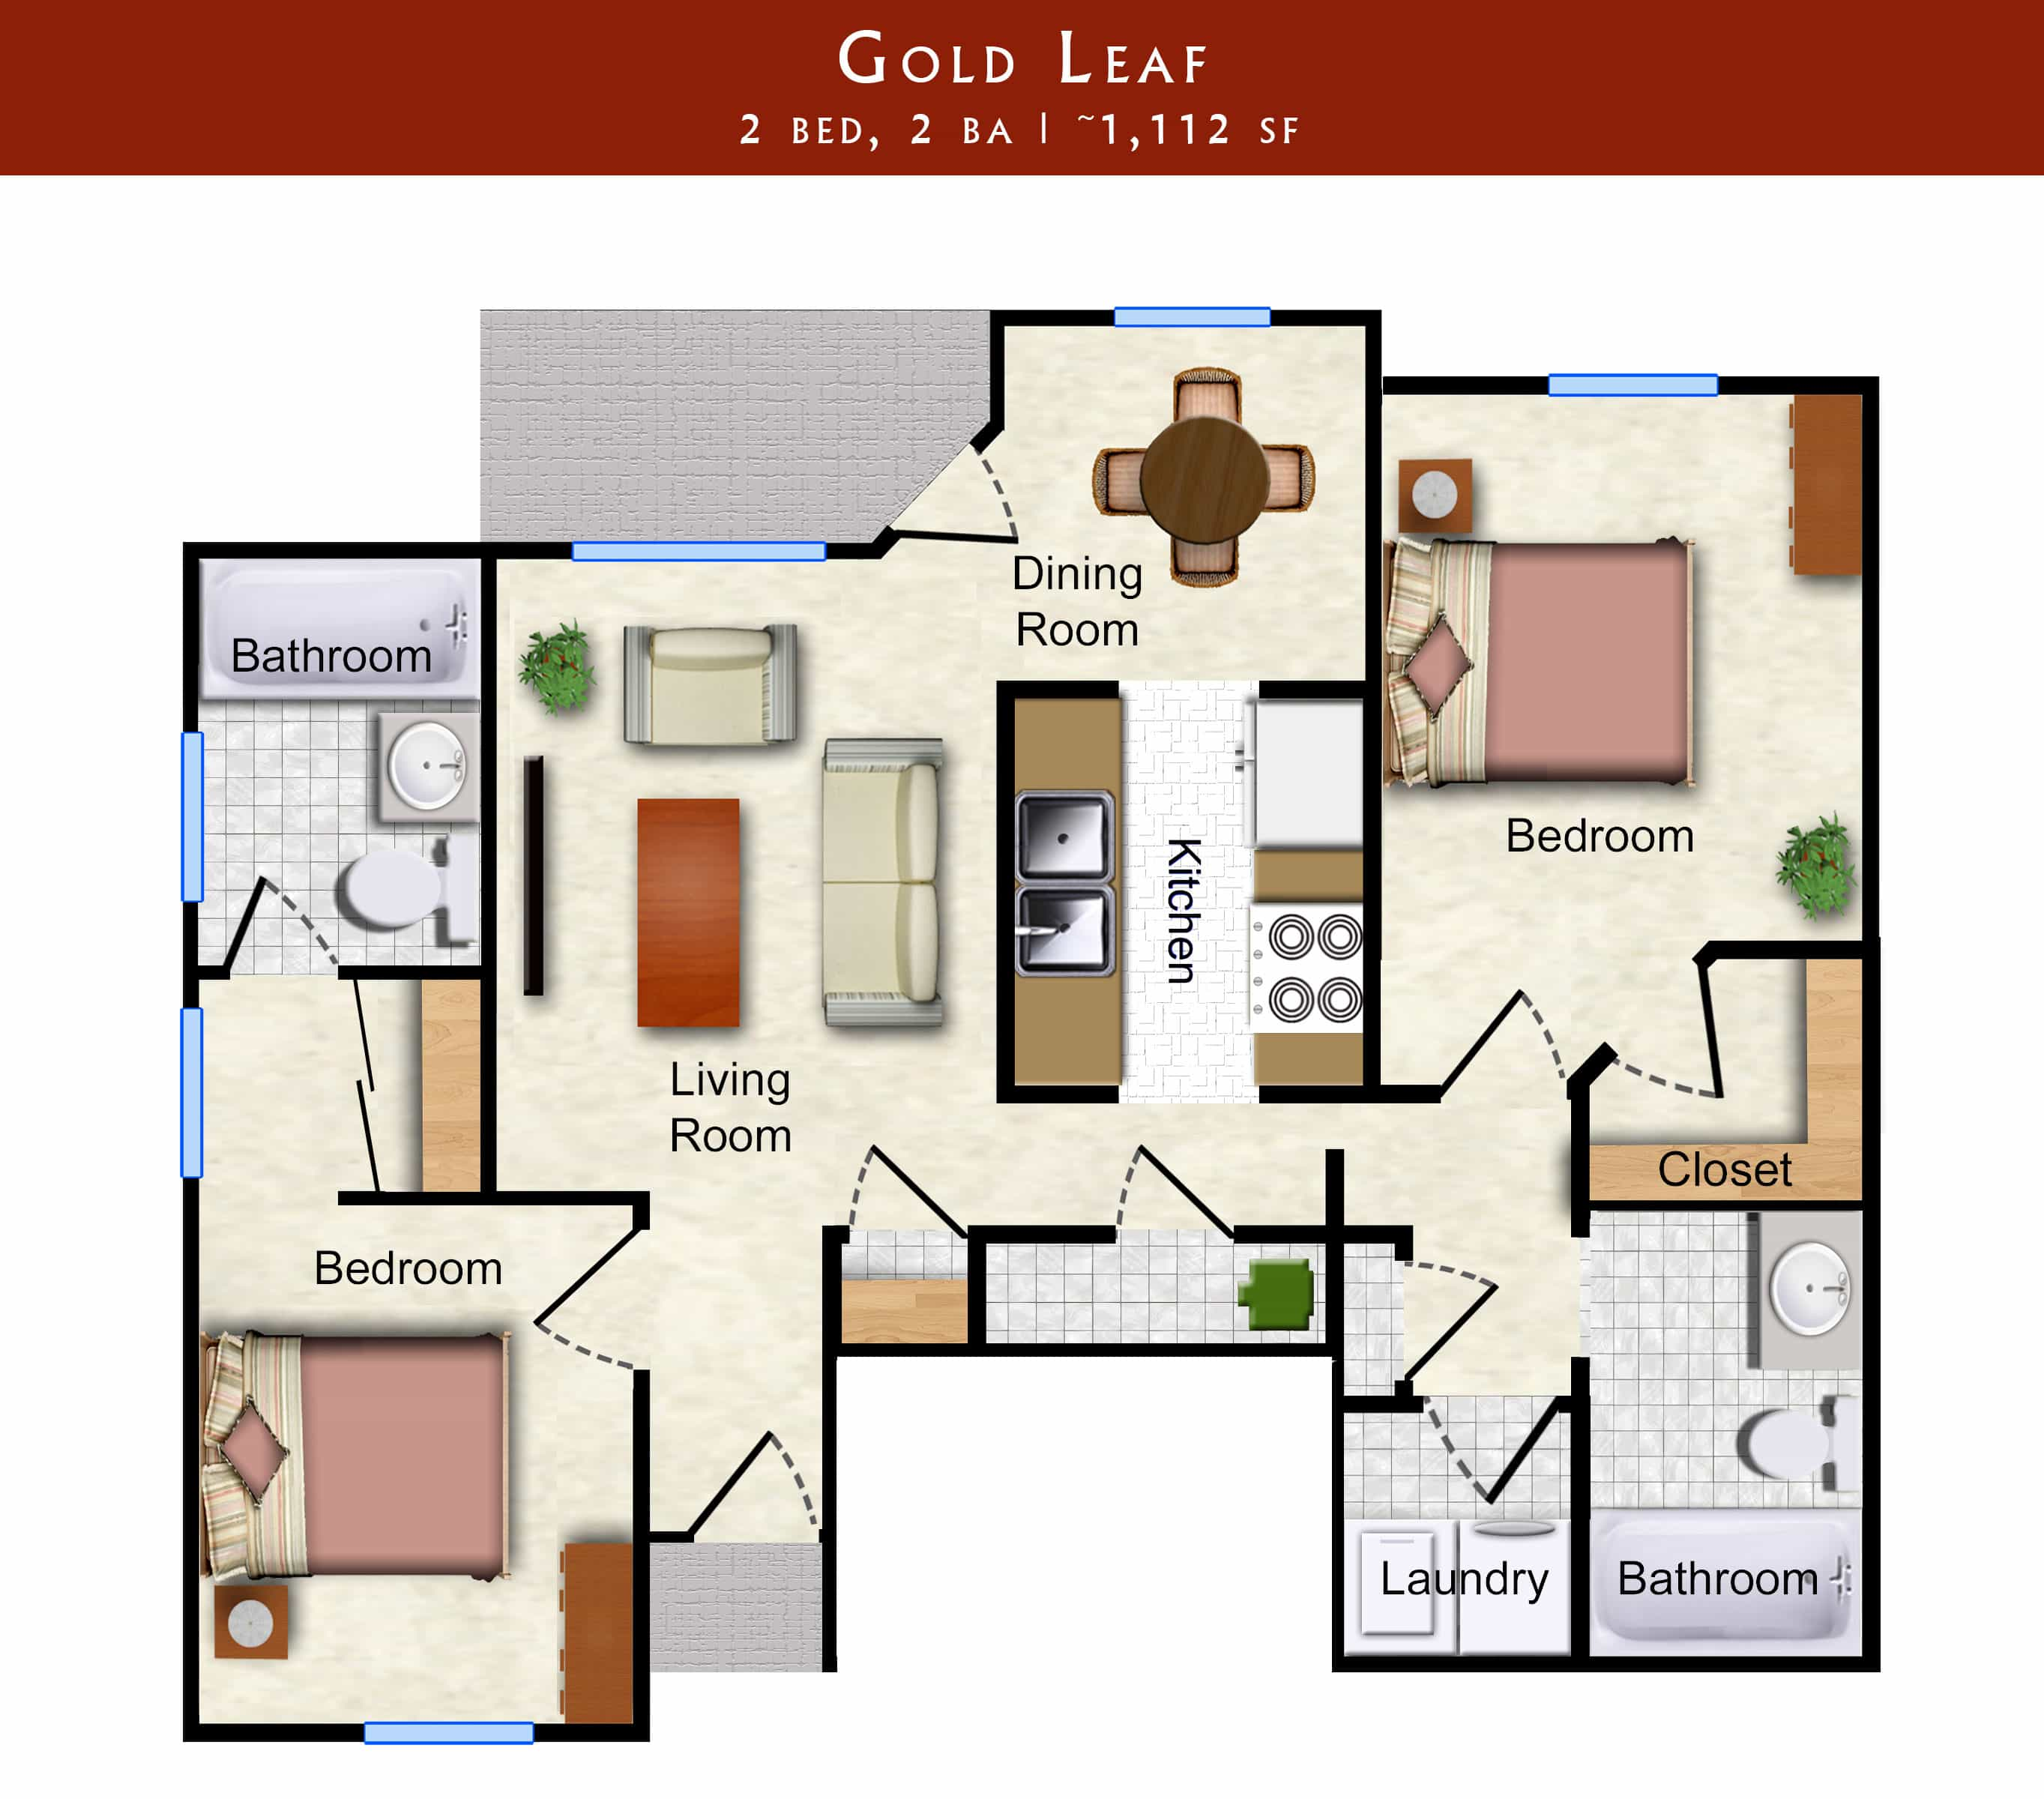 Gold Leaf Floor Plan